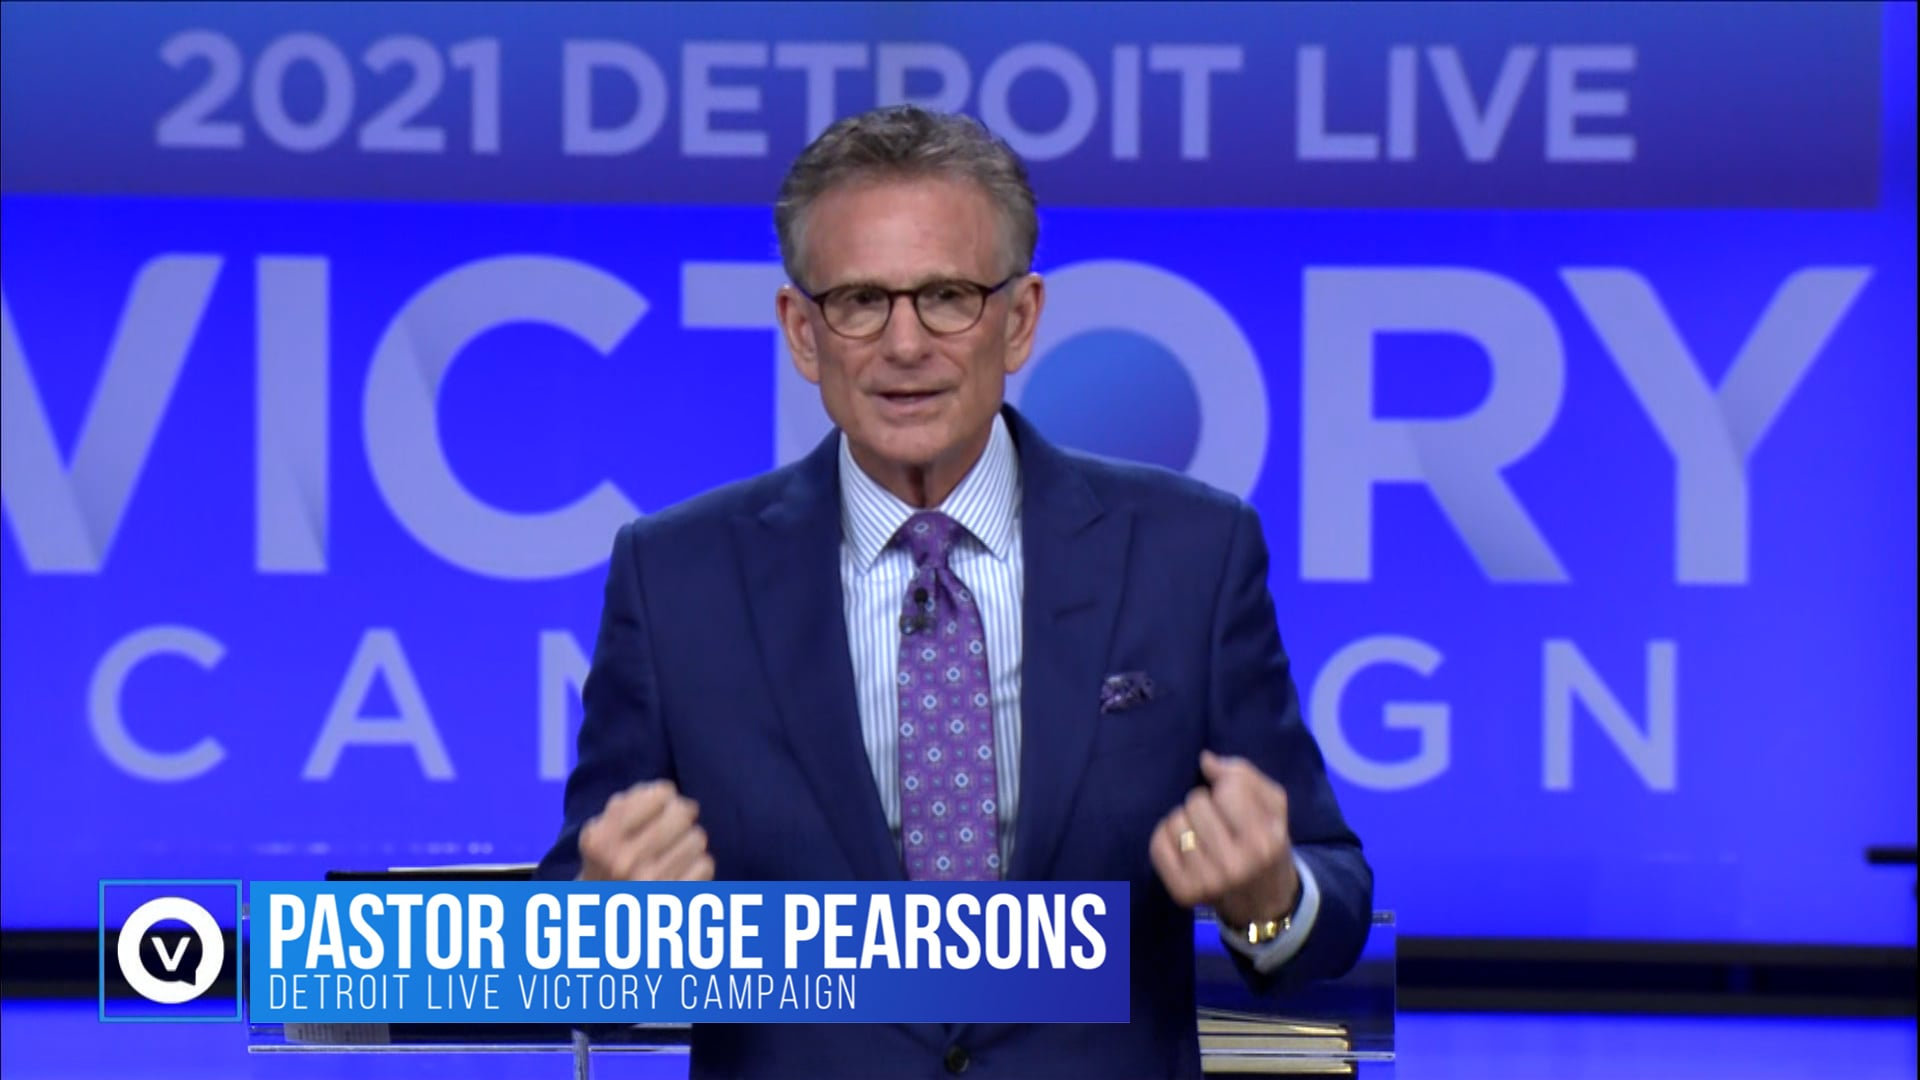 At the 2021 Detroit Victory Campaign, George Pearsons thanks the KCM Partners for their faithfulness. There's an anointing, as Partners together, to build back everything the devil has stolen. As a Partner, you should be experiencing a residual effect of partnership; blessed in every way that KCM is blessed!